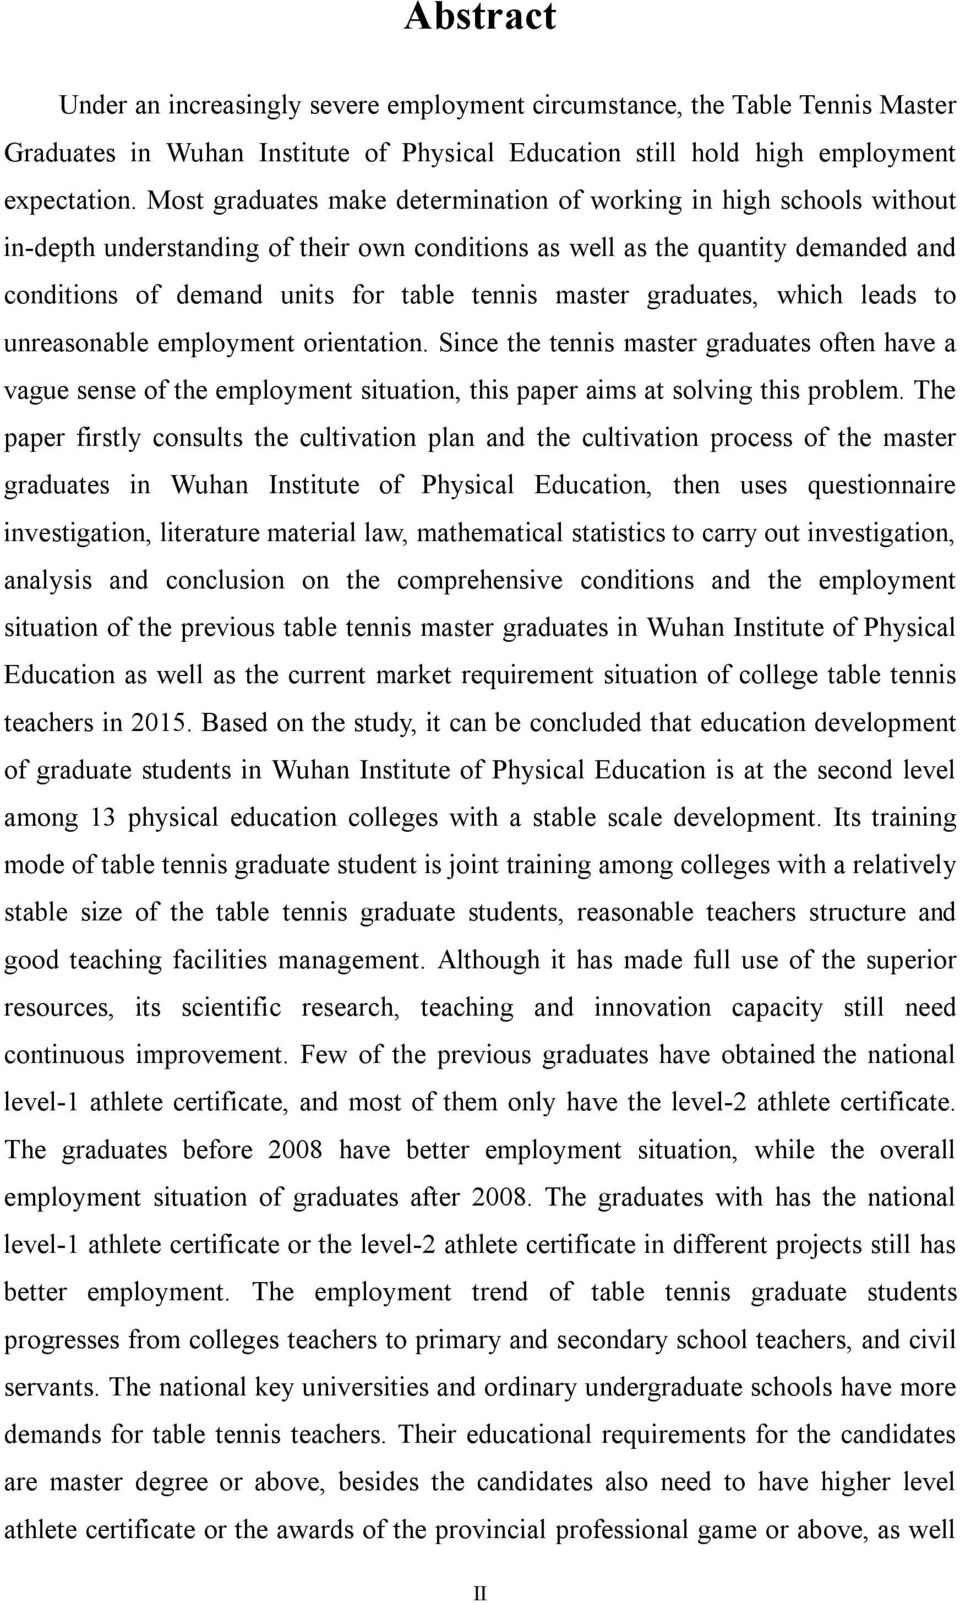 master graduates, which leads to unreasonable employment orientation. Since the tennis master graduates often have a vague sense of the employment situation, this paper aims at solving this problem.